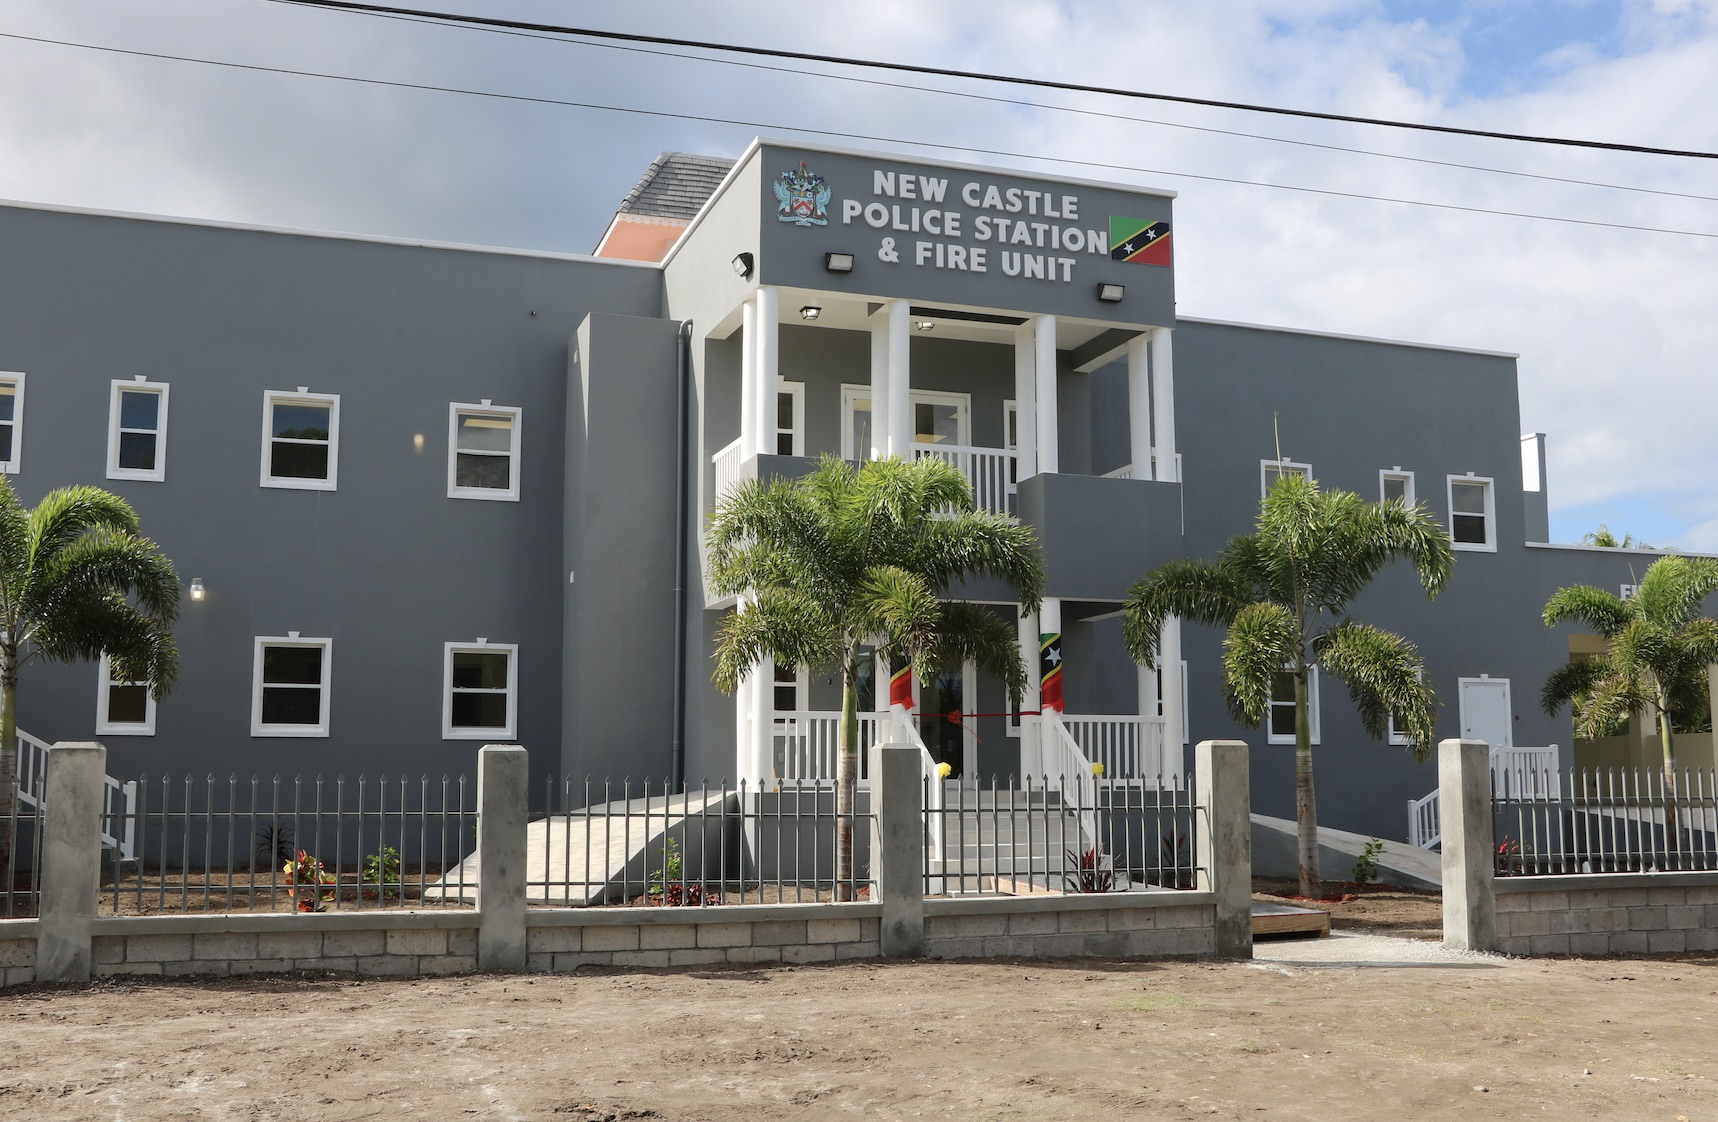 Newly constructed multimillion-dollar New Castle Police Station and Fire Unit officially commissioned on December 03, 2020